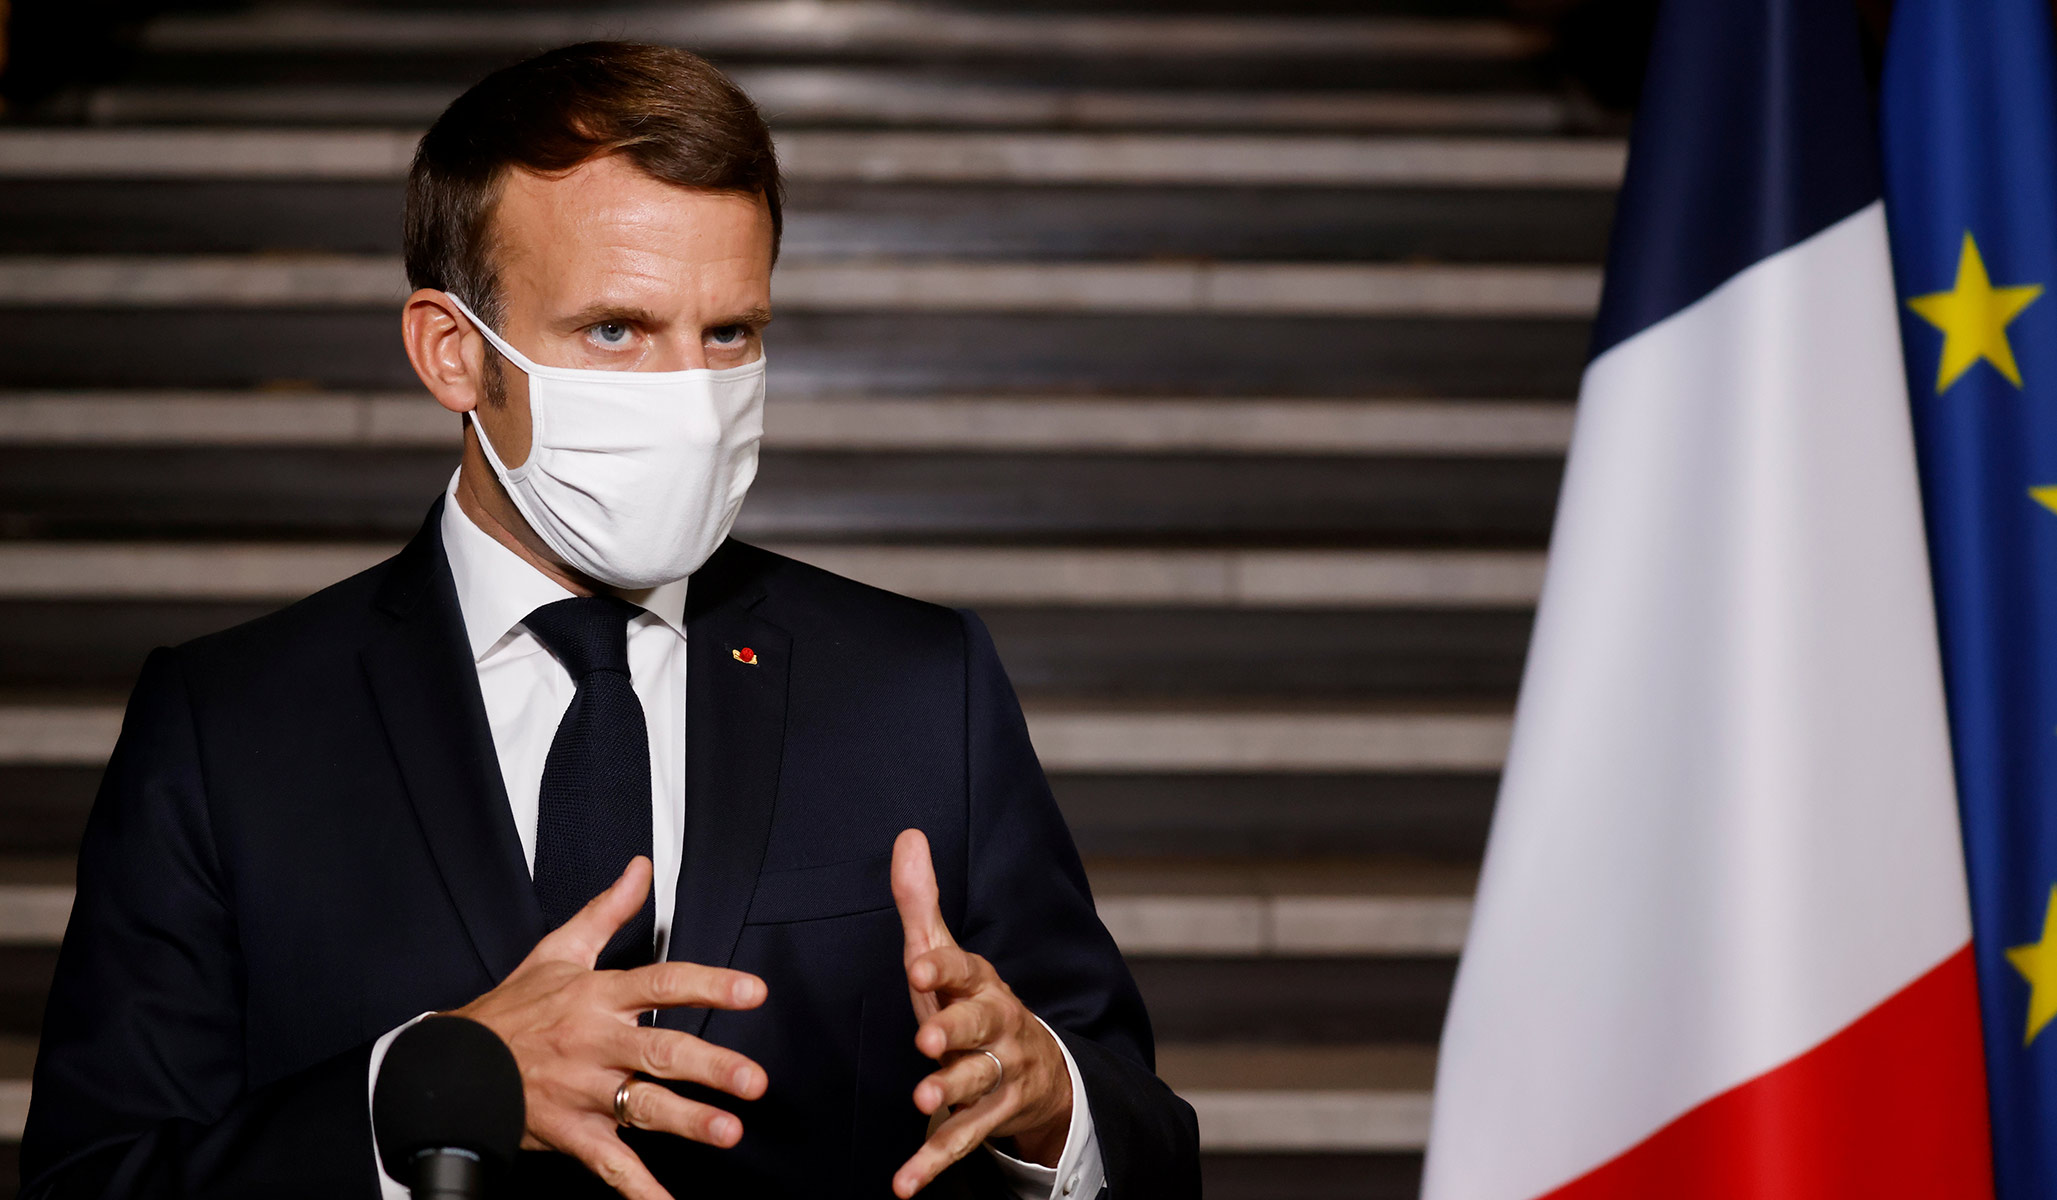 France S Plan To Combat Islamist Radicalization Flawed National Review